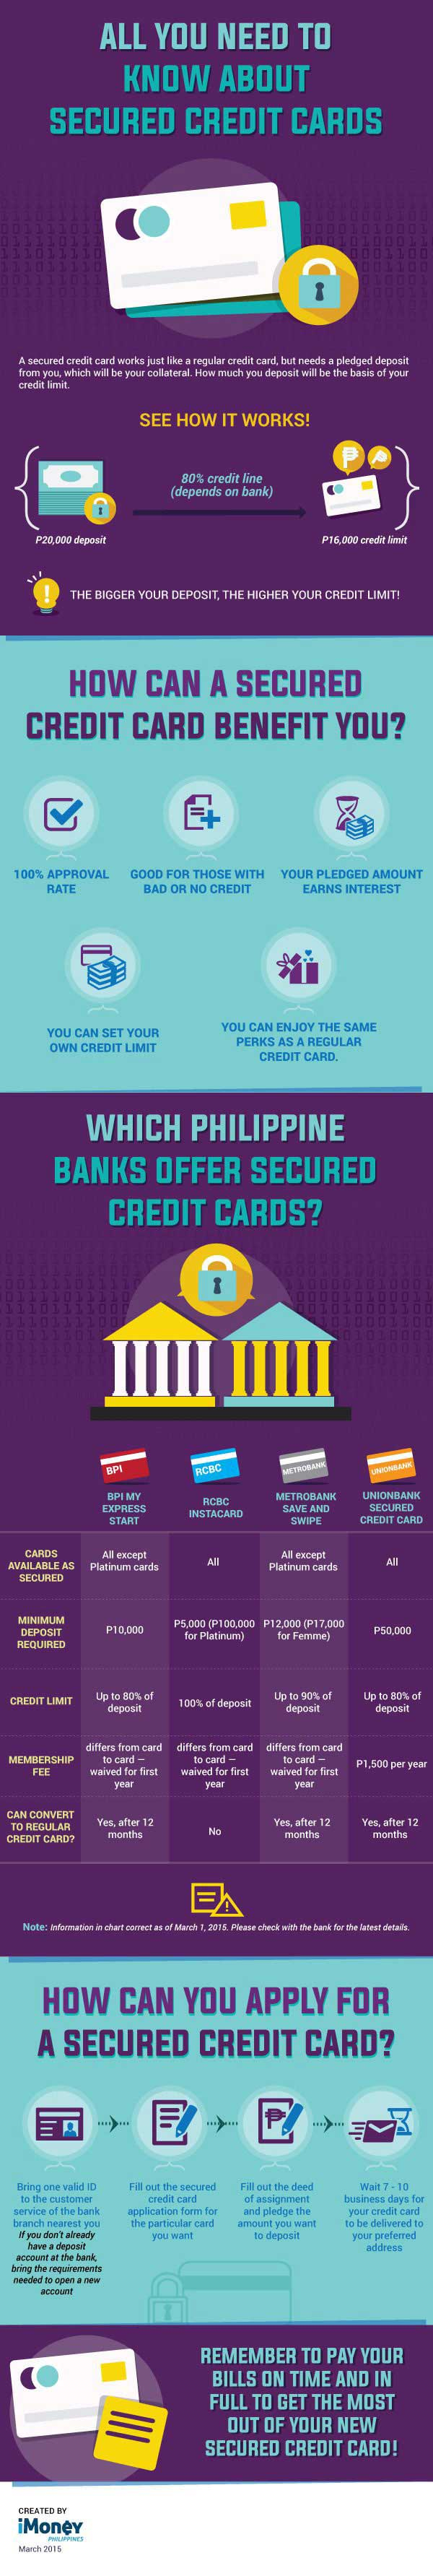 banks-offering-secured-credit-card